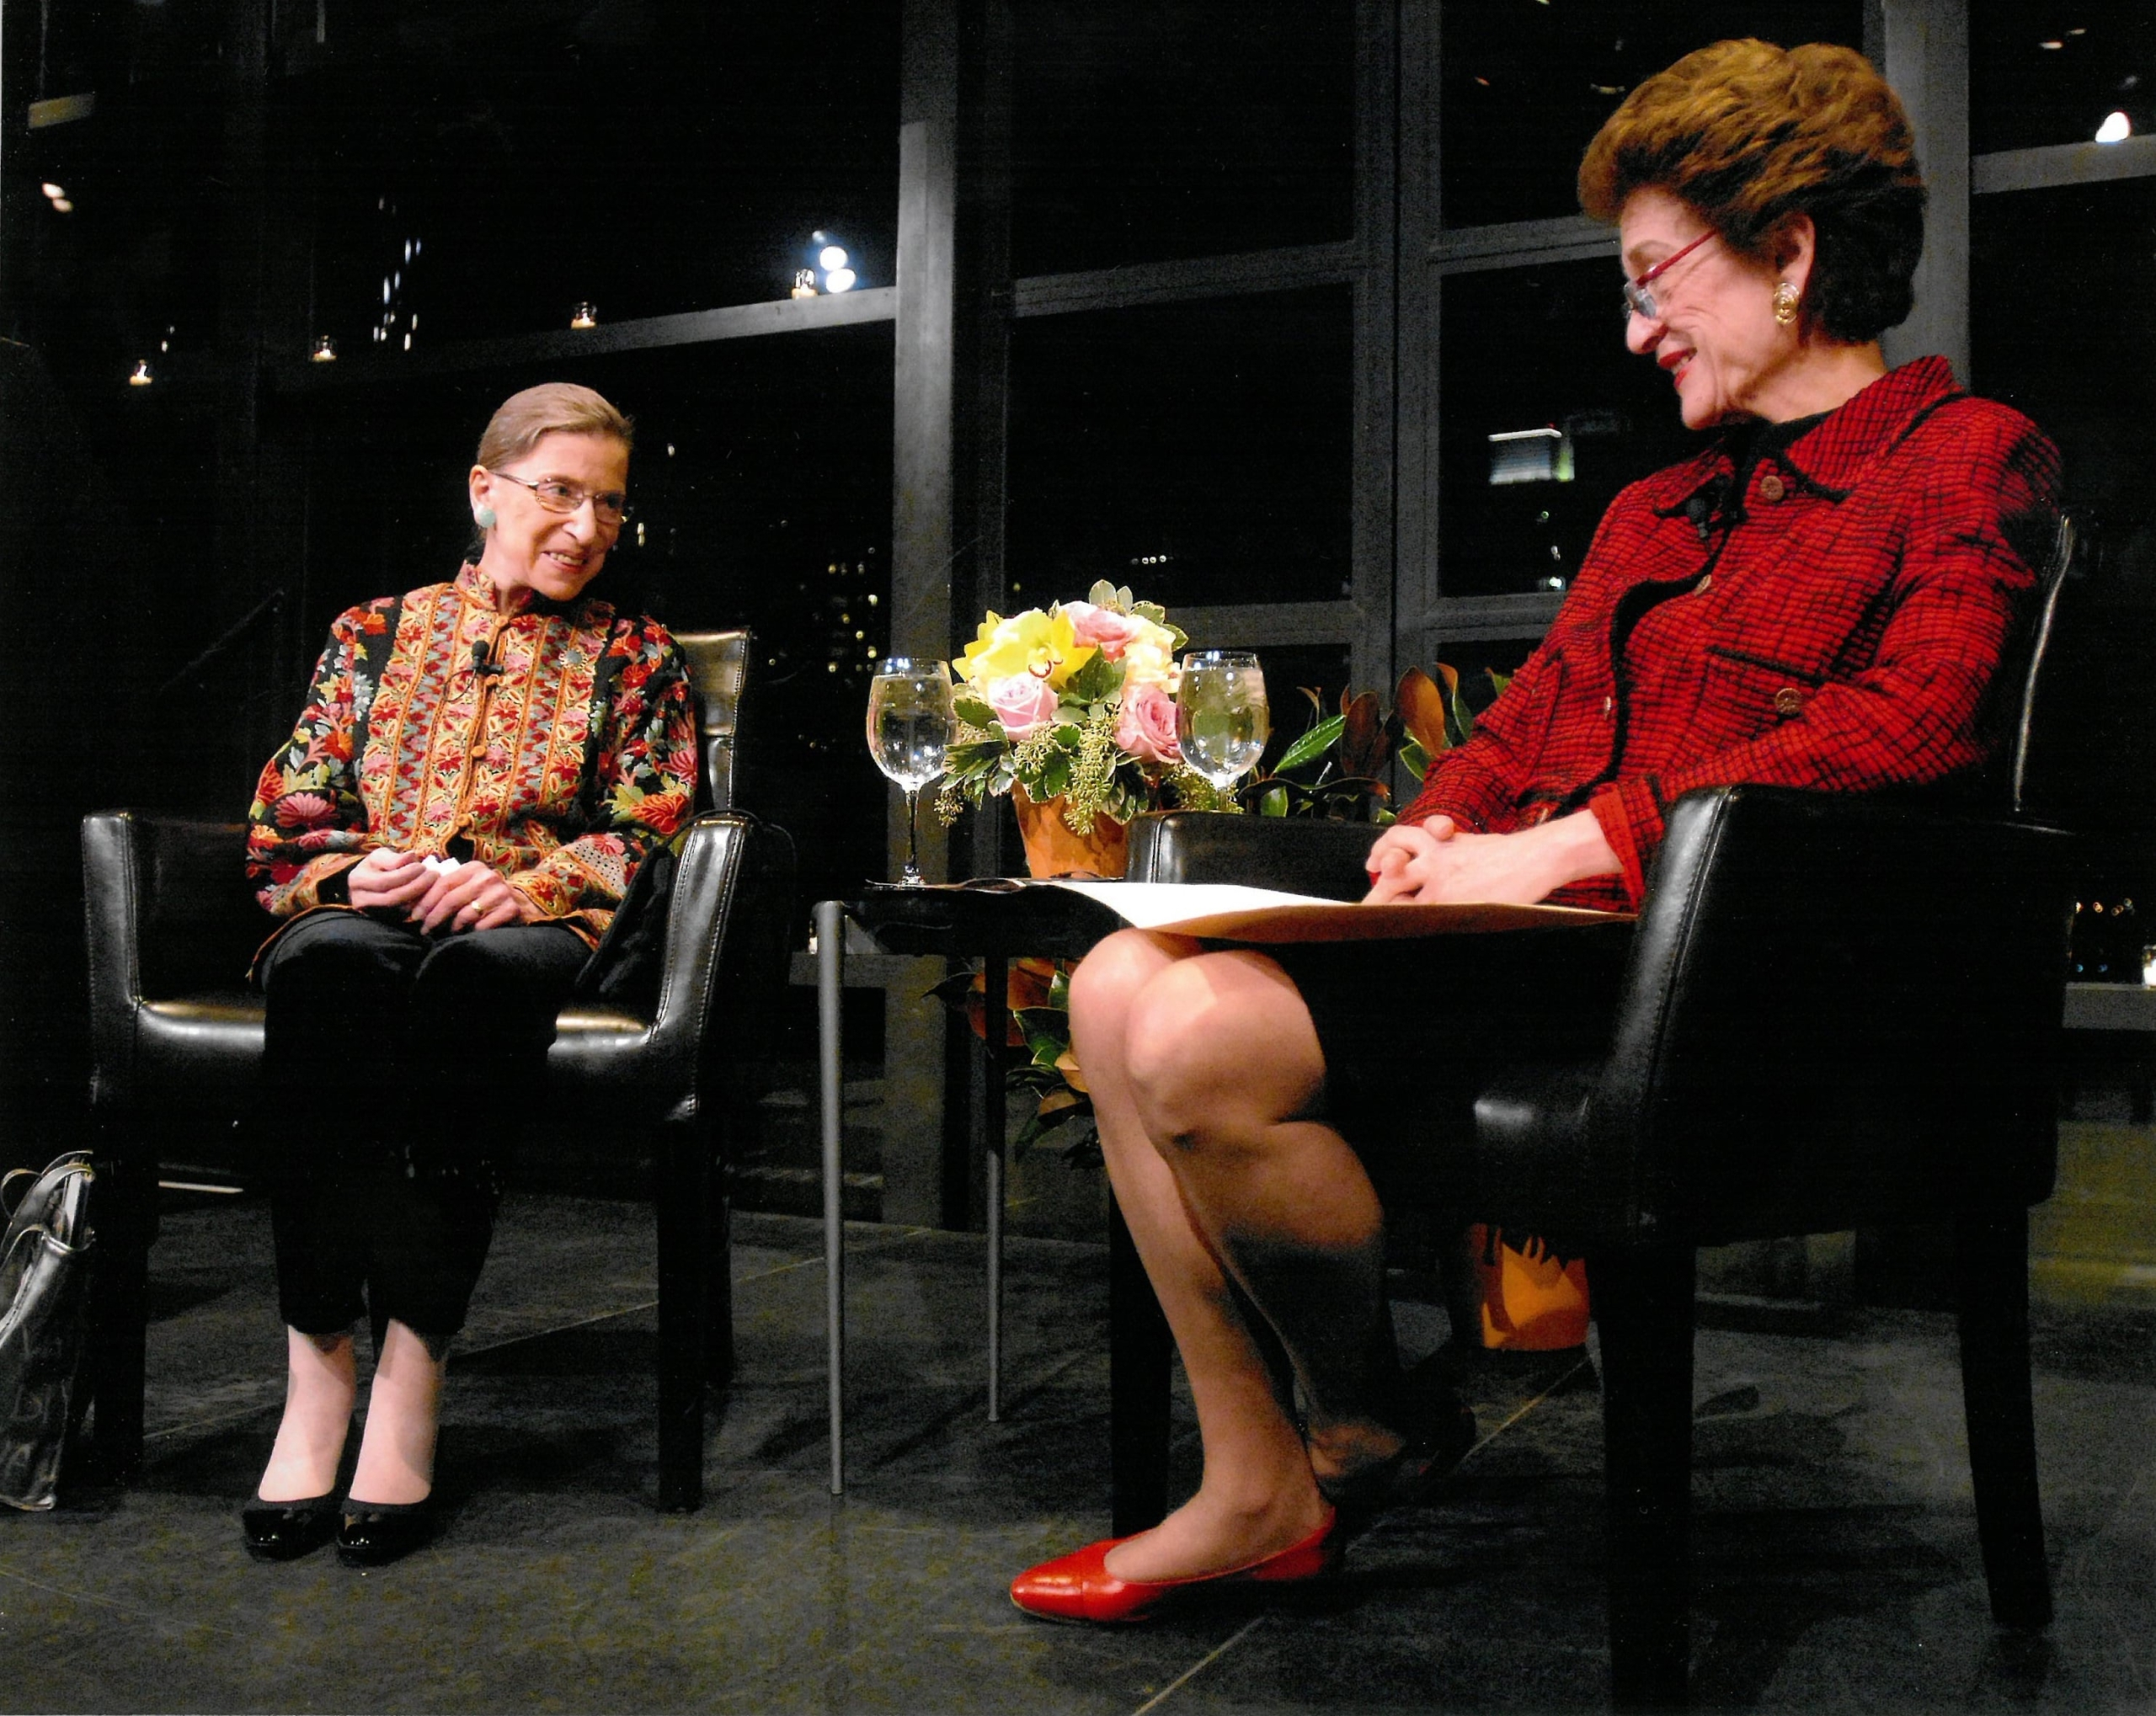 Common Threads of Justice: Remembering Justice Ruth Bader Ginsburg